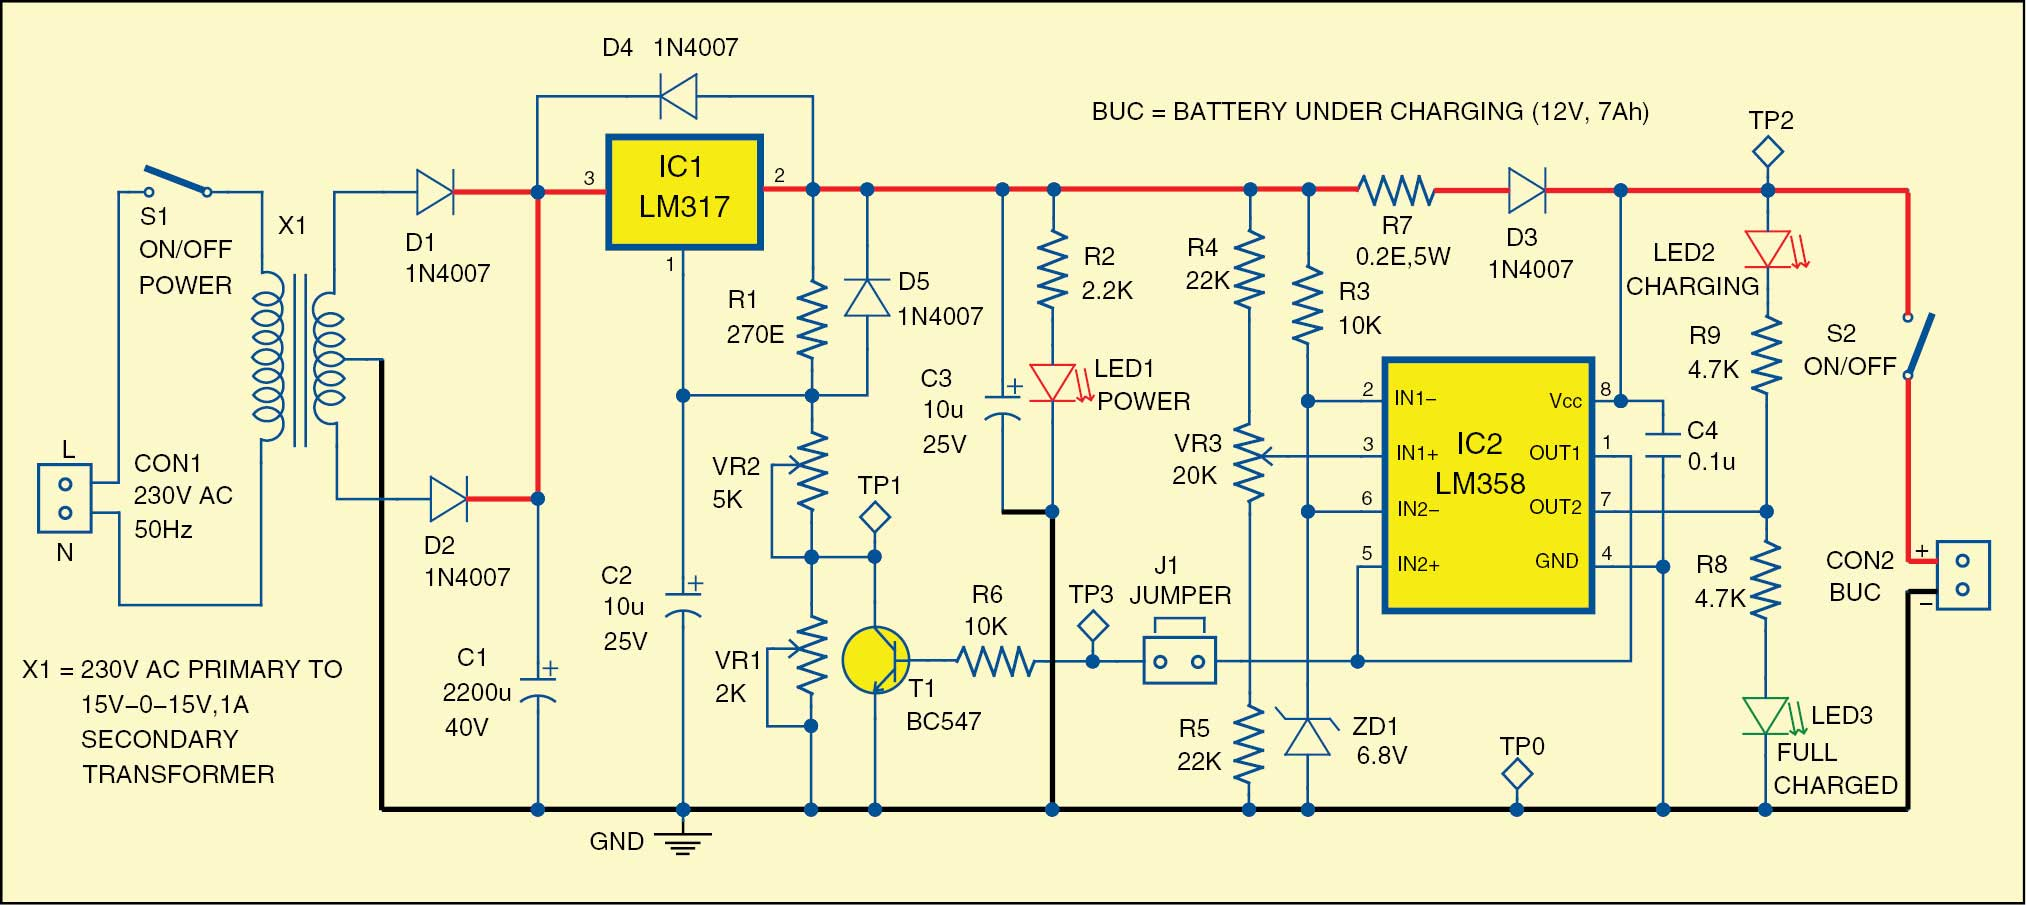 Outstanding 12V Battery Charger Detailed Project With Circuit Available Wiring Cloud Icalpermsplehendilmohammedshrineorg